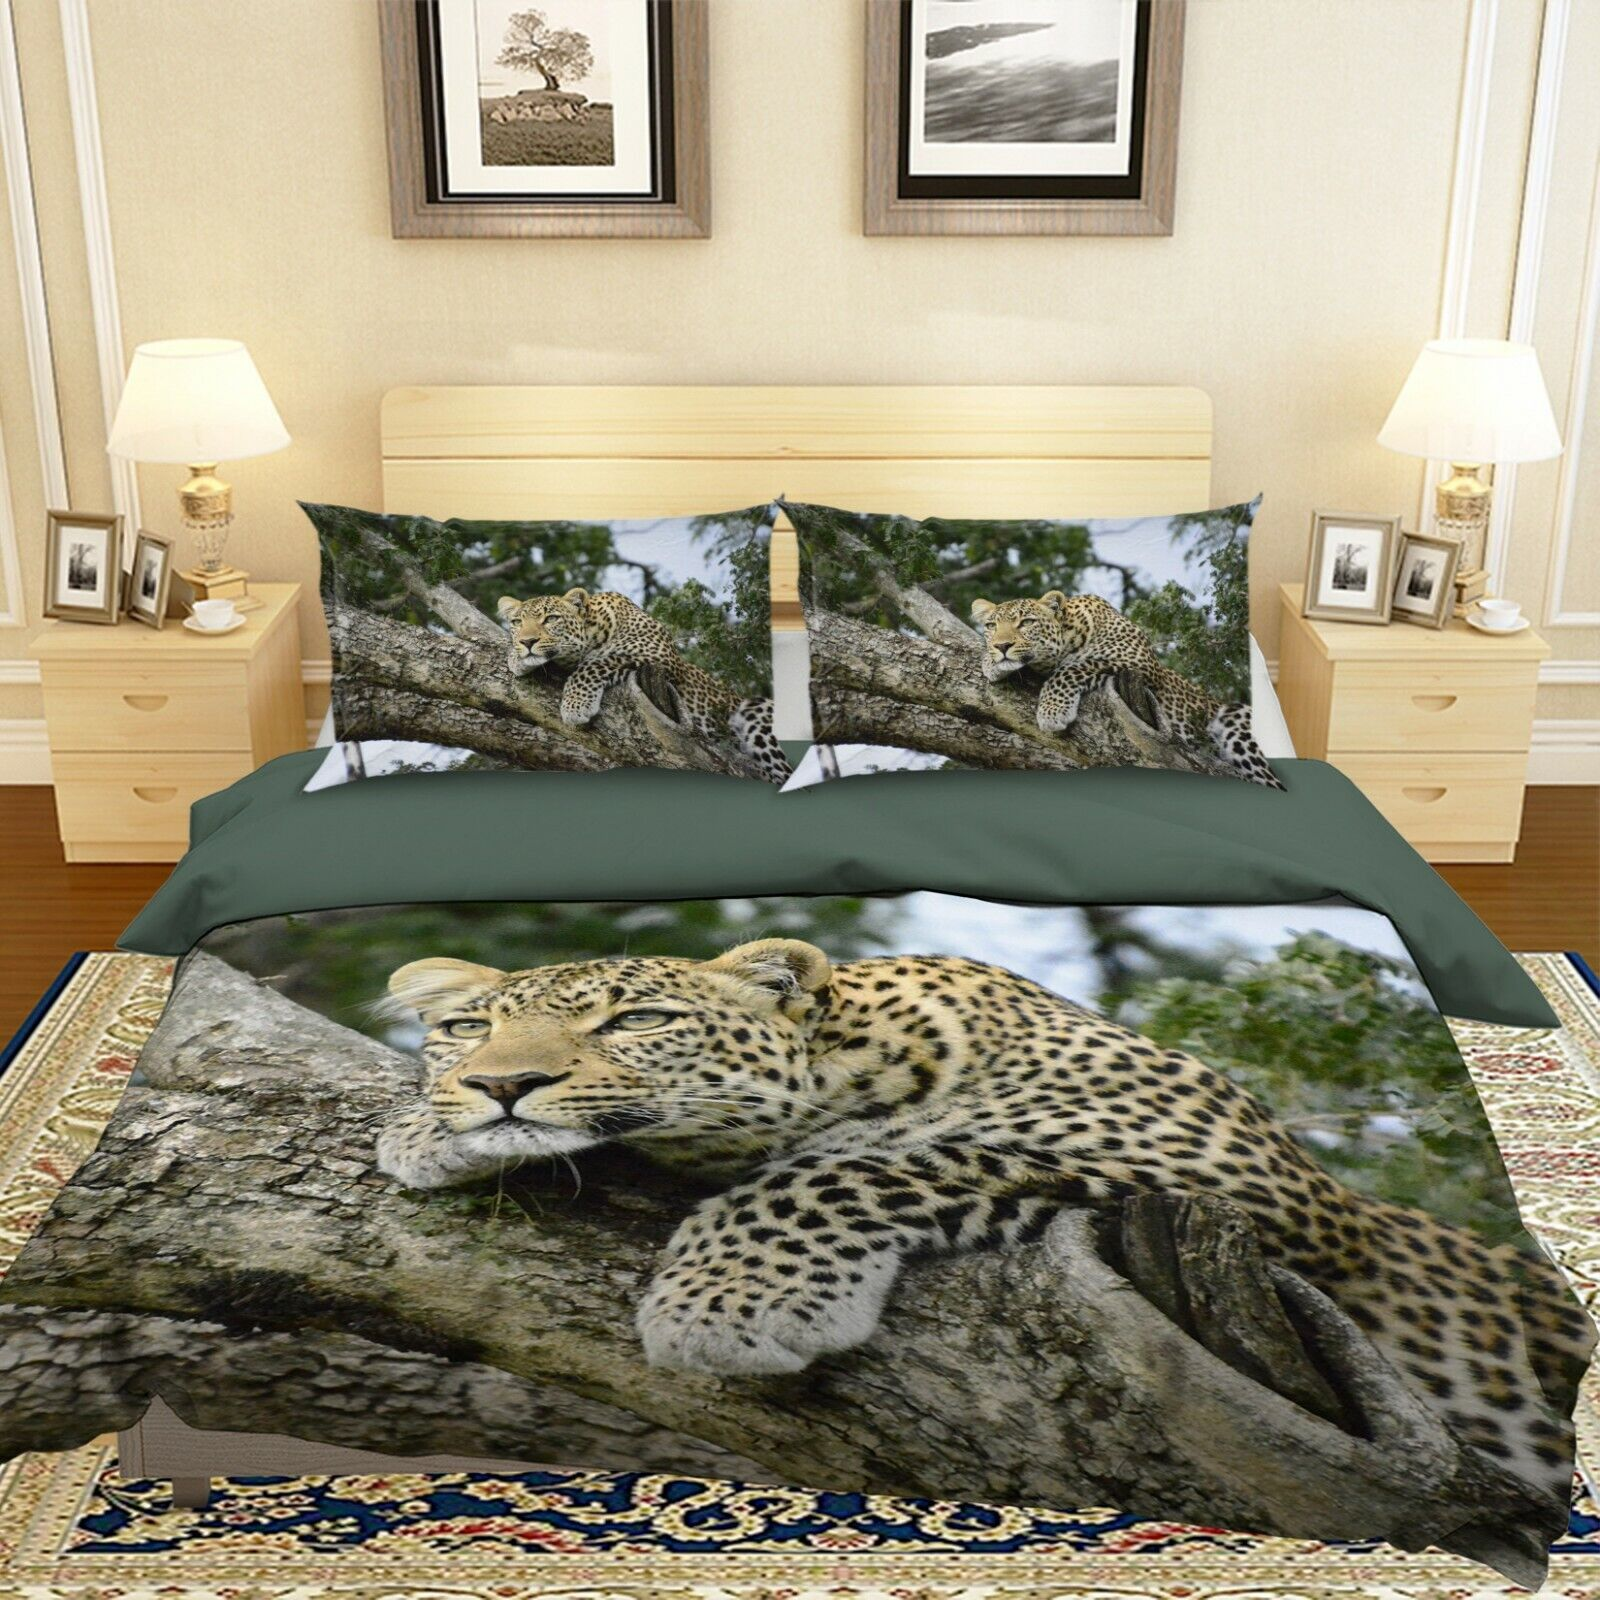 3D Leopard N68 Animal Bett Pillowcases Quilt Duvet Startseite Königin König Amy